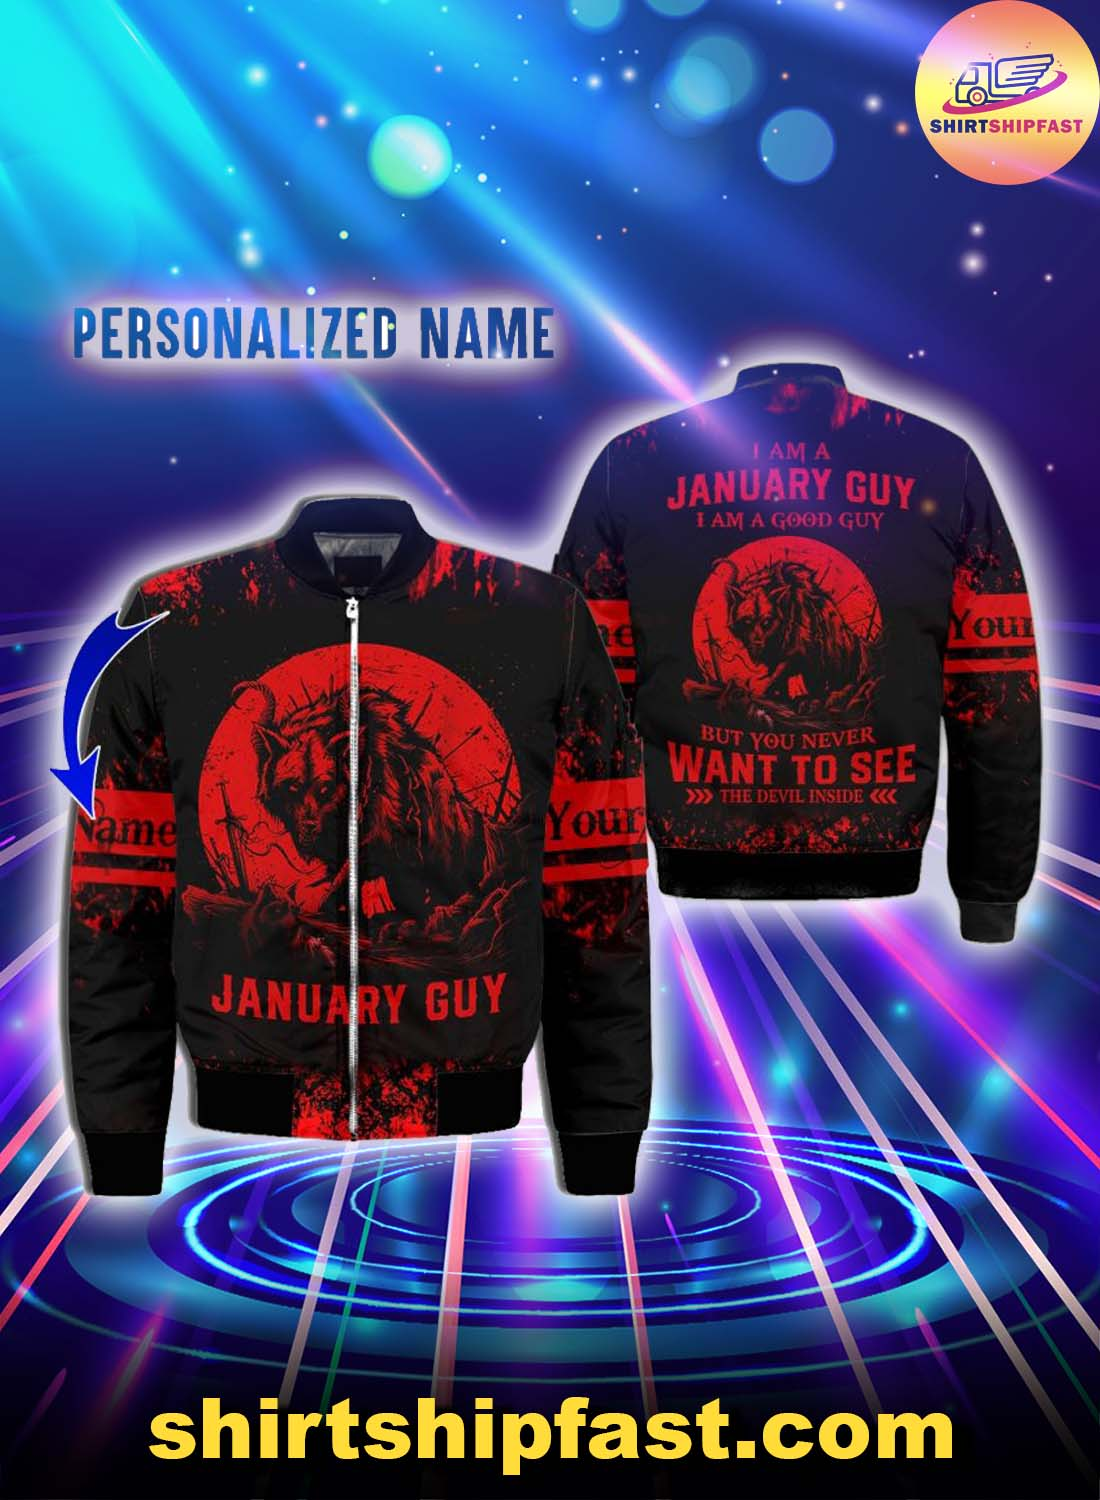 Personalized name I am a January guy I am a good guy but you never want to see the devil inside 3d bomber